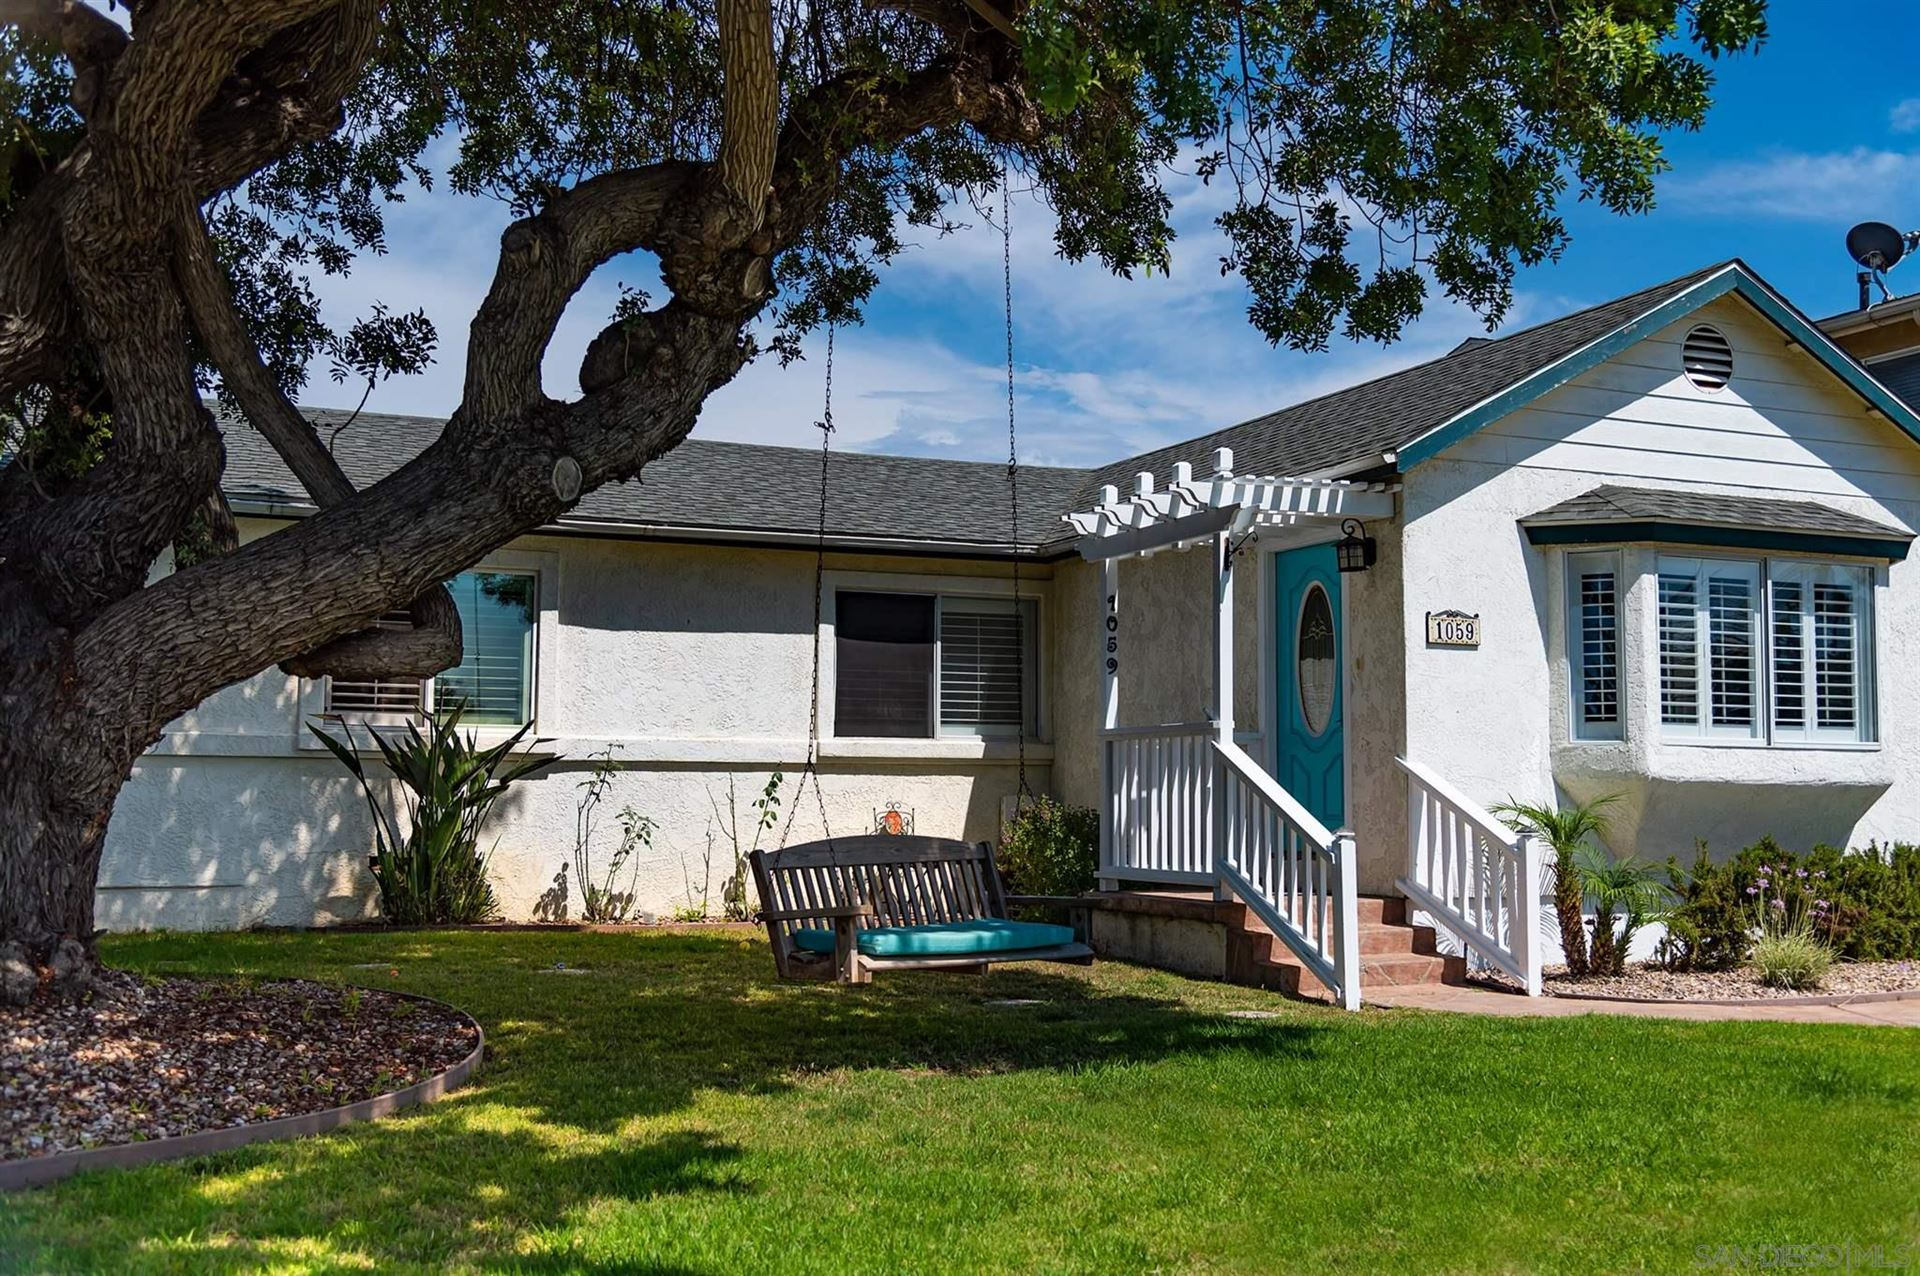 Photo of 1059 11Th St, Imperial Beach, CA 91932 (MLS # 210021689)